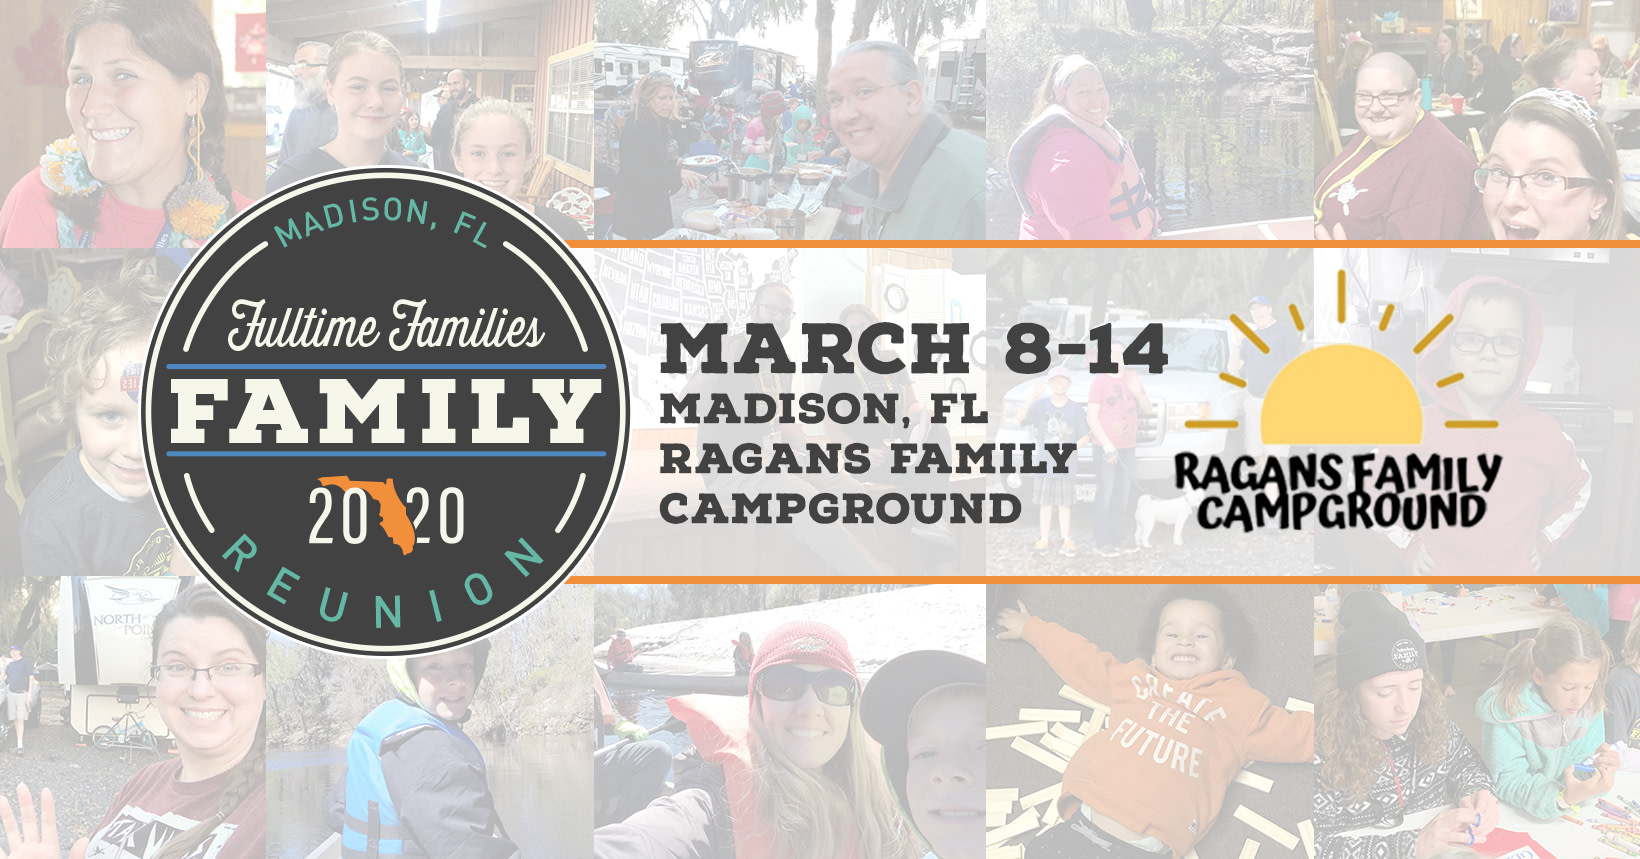 2020 Family Reunion Rally - Fulltime Families